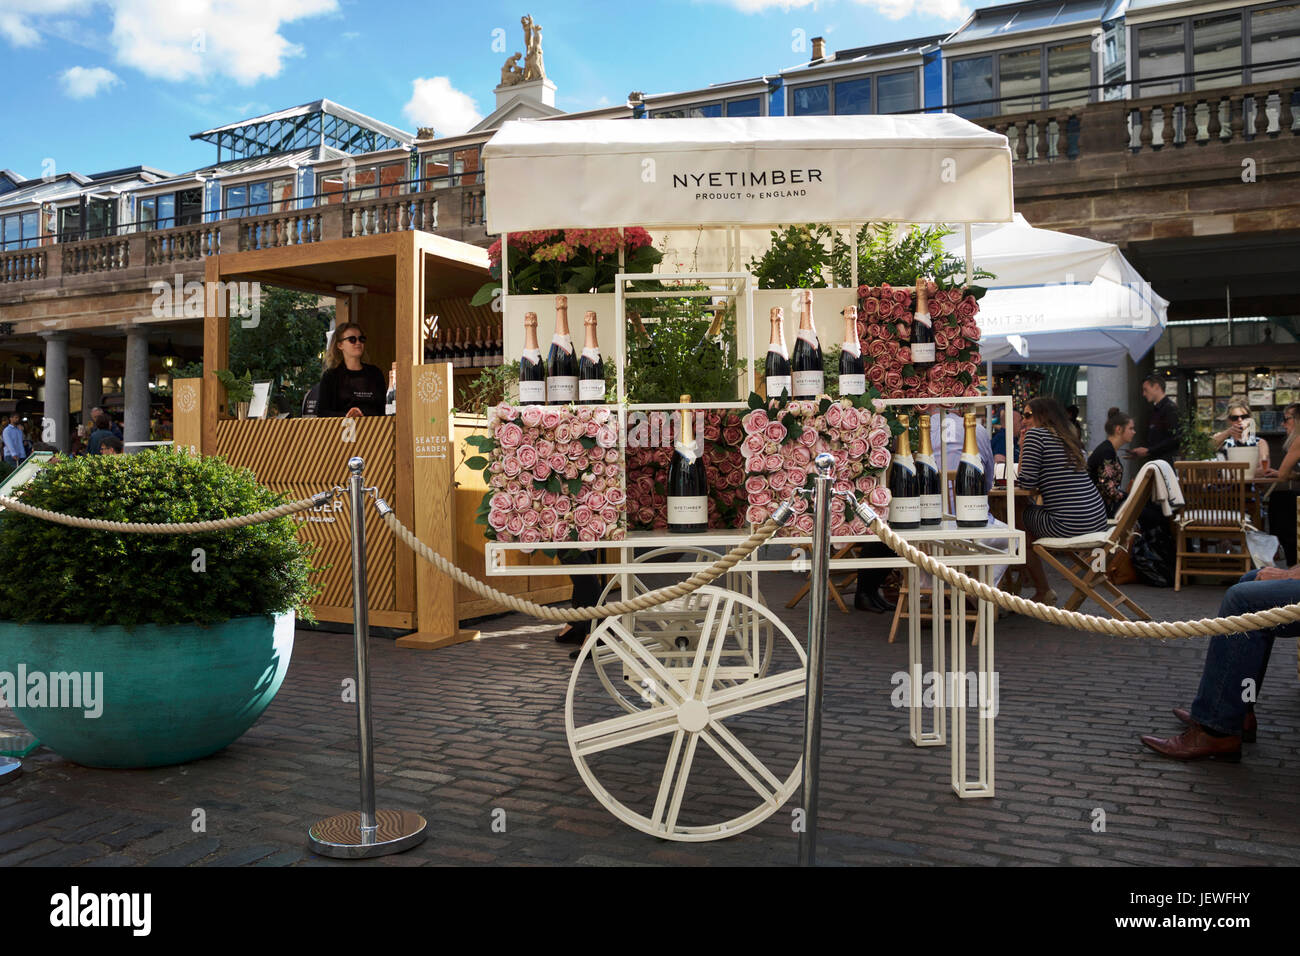 Made in England. English sparkling wine by Nyetimber, English Wine Producer. Nyetimber Garden Bar. - Stock Image